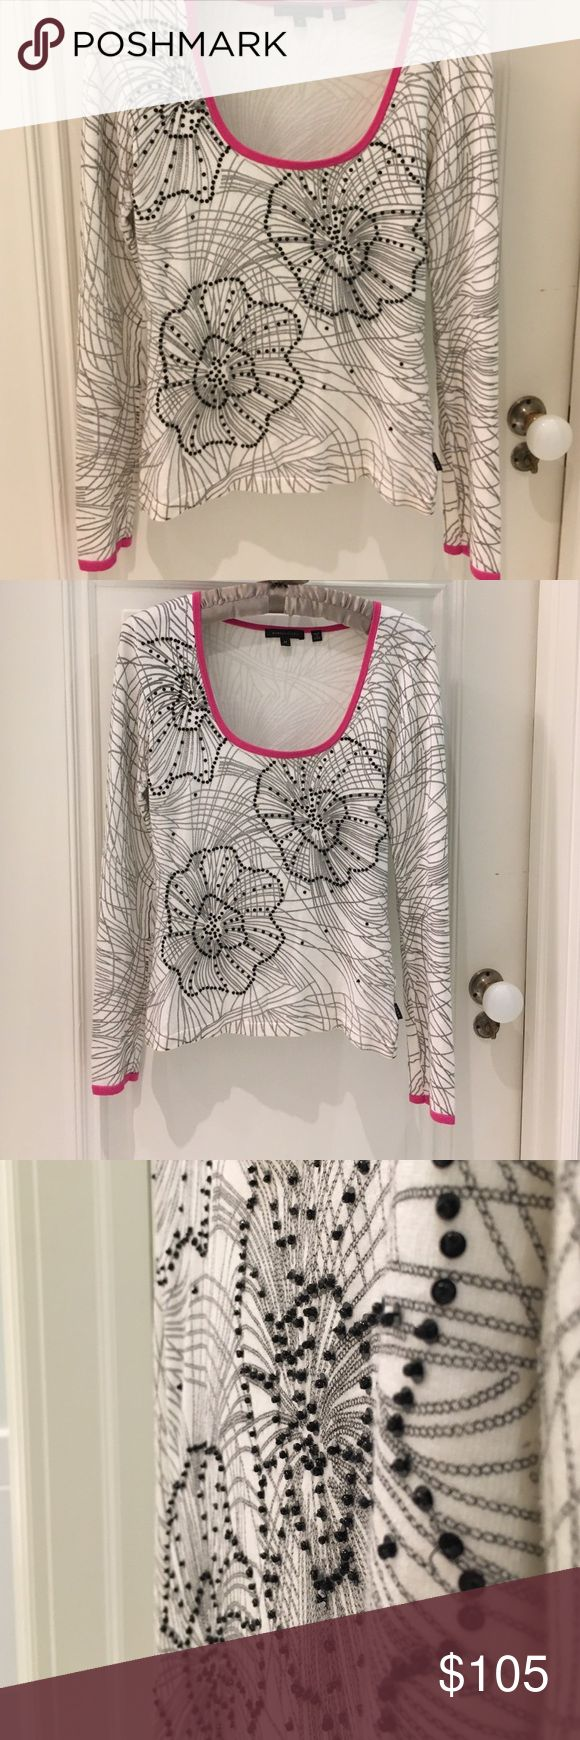 """🆕 BCBGMaxAzria beaded knit Henley top 🎁Offers encouraged & flexible                                                                                🔑Bundle to save 15%                                                                                                   👍Like for price drop notifications                                     EUG, no stains spots or loose threads. Length from neck to hem ~15"""", sleeve ~21.25"""", breast ~14"""". BCBGMaxAzria Tops Tees - Long Sleeve"""